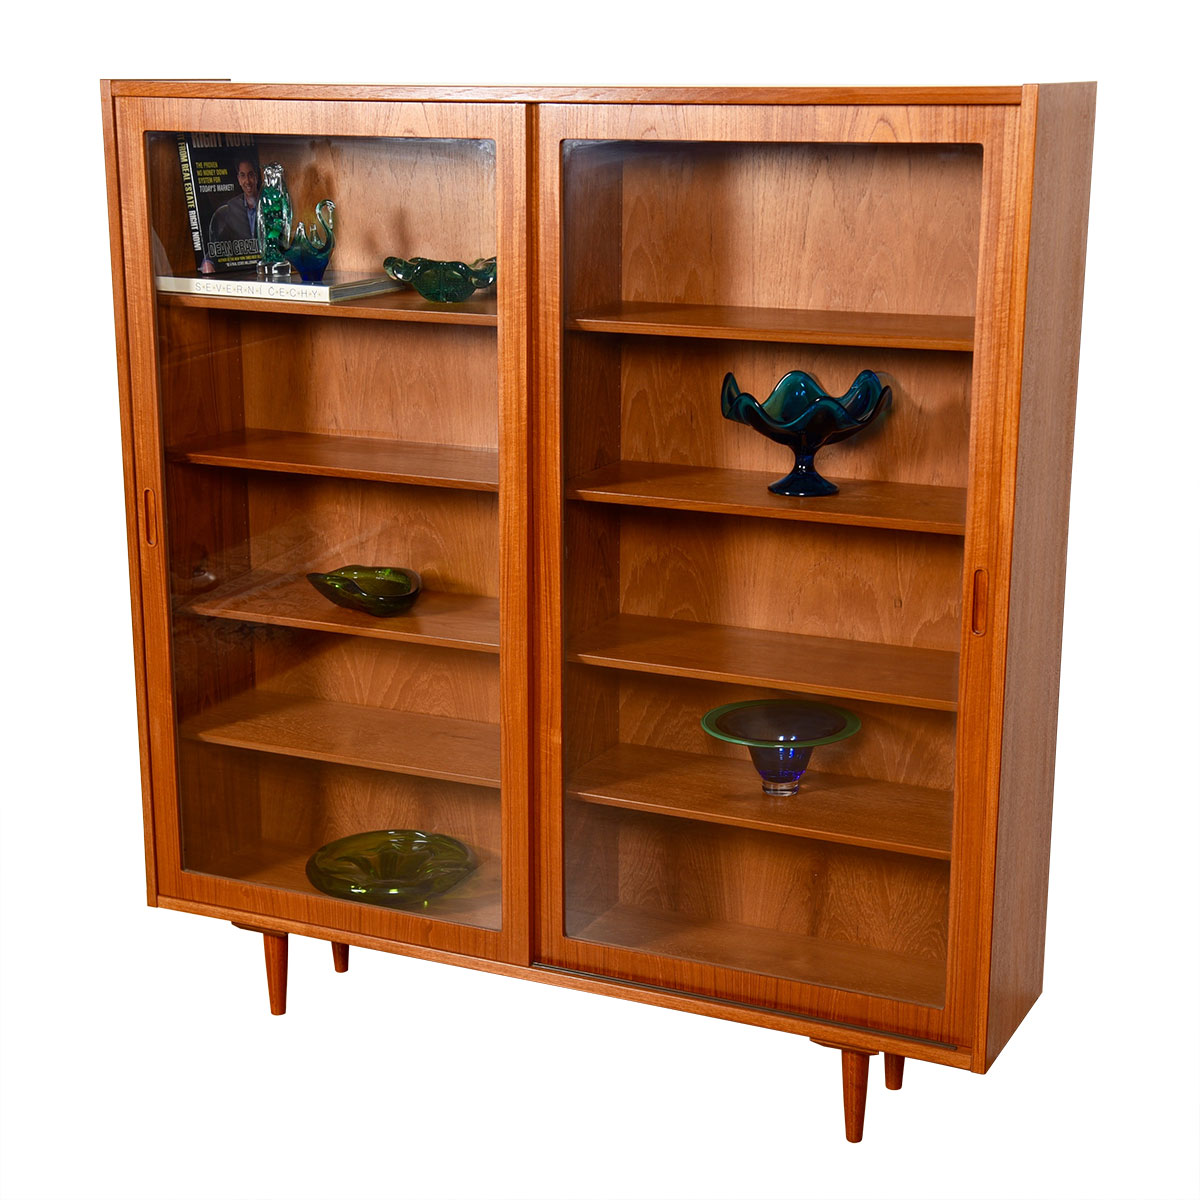 Condo-Sized Danish Teak Sliding Glass Door Adjustable Bookcase / Display Cabinet